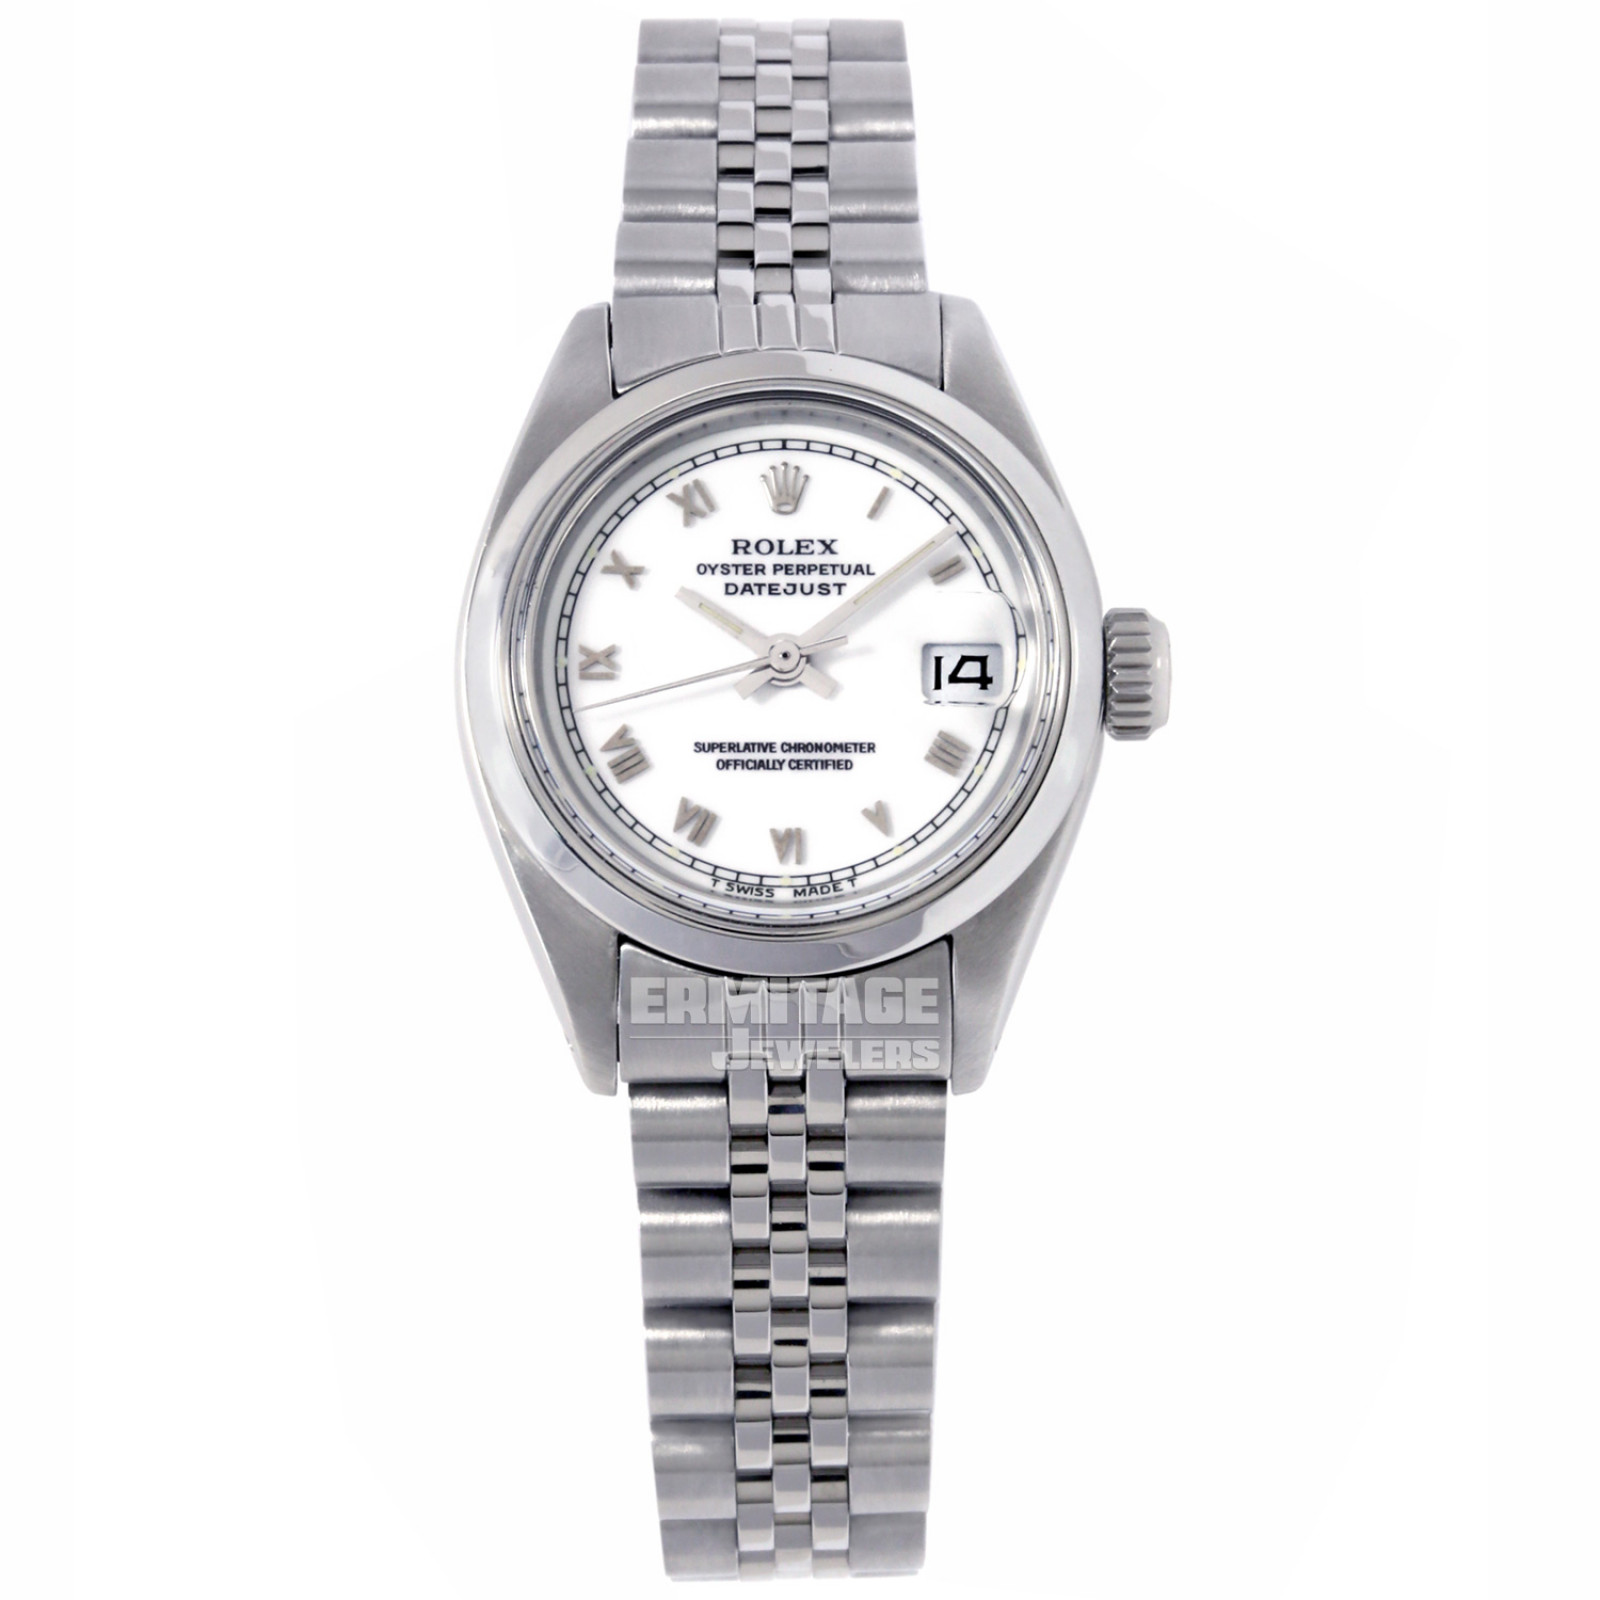 Vintage Rolex Datejust 6917 with White Dial